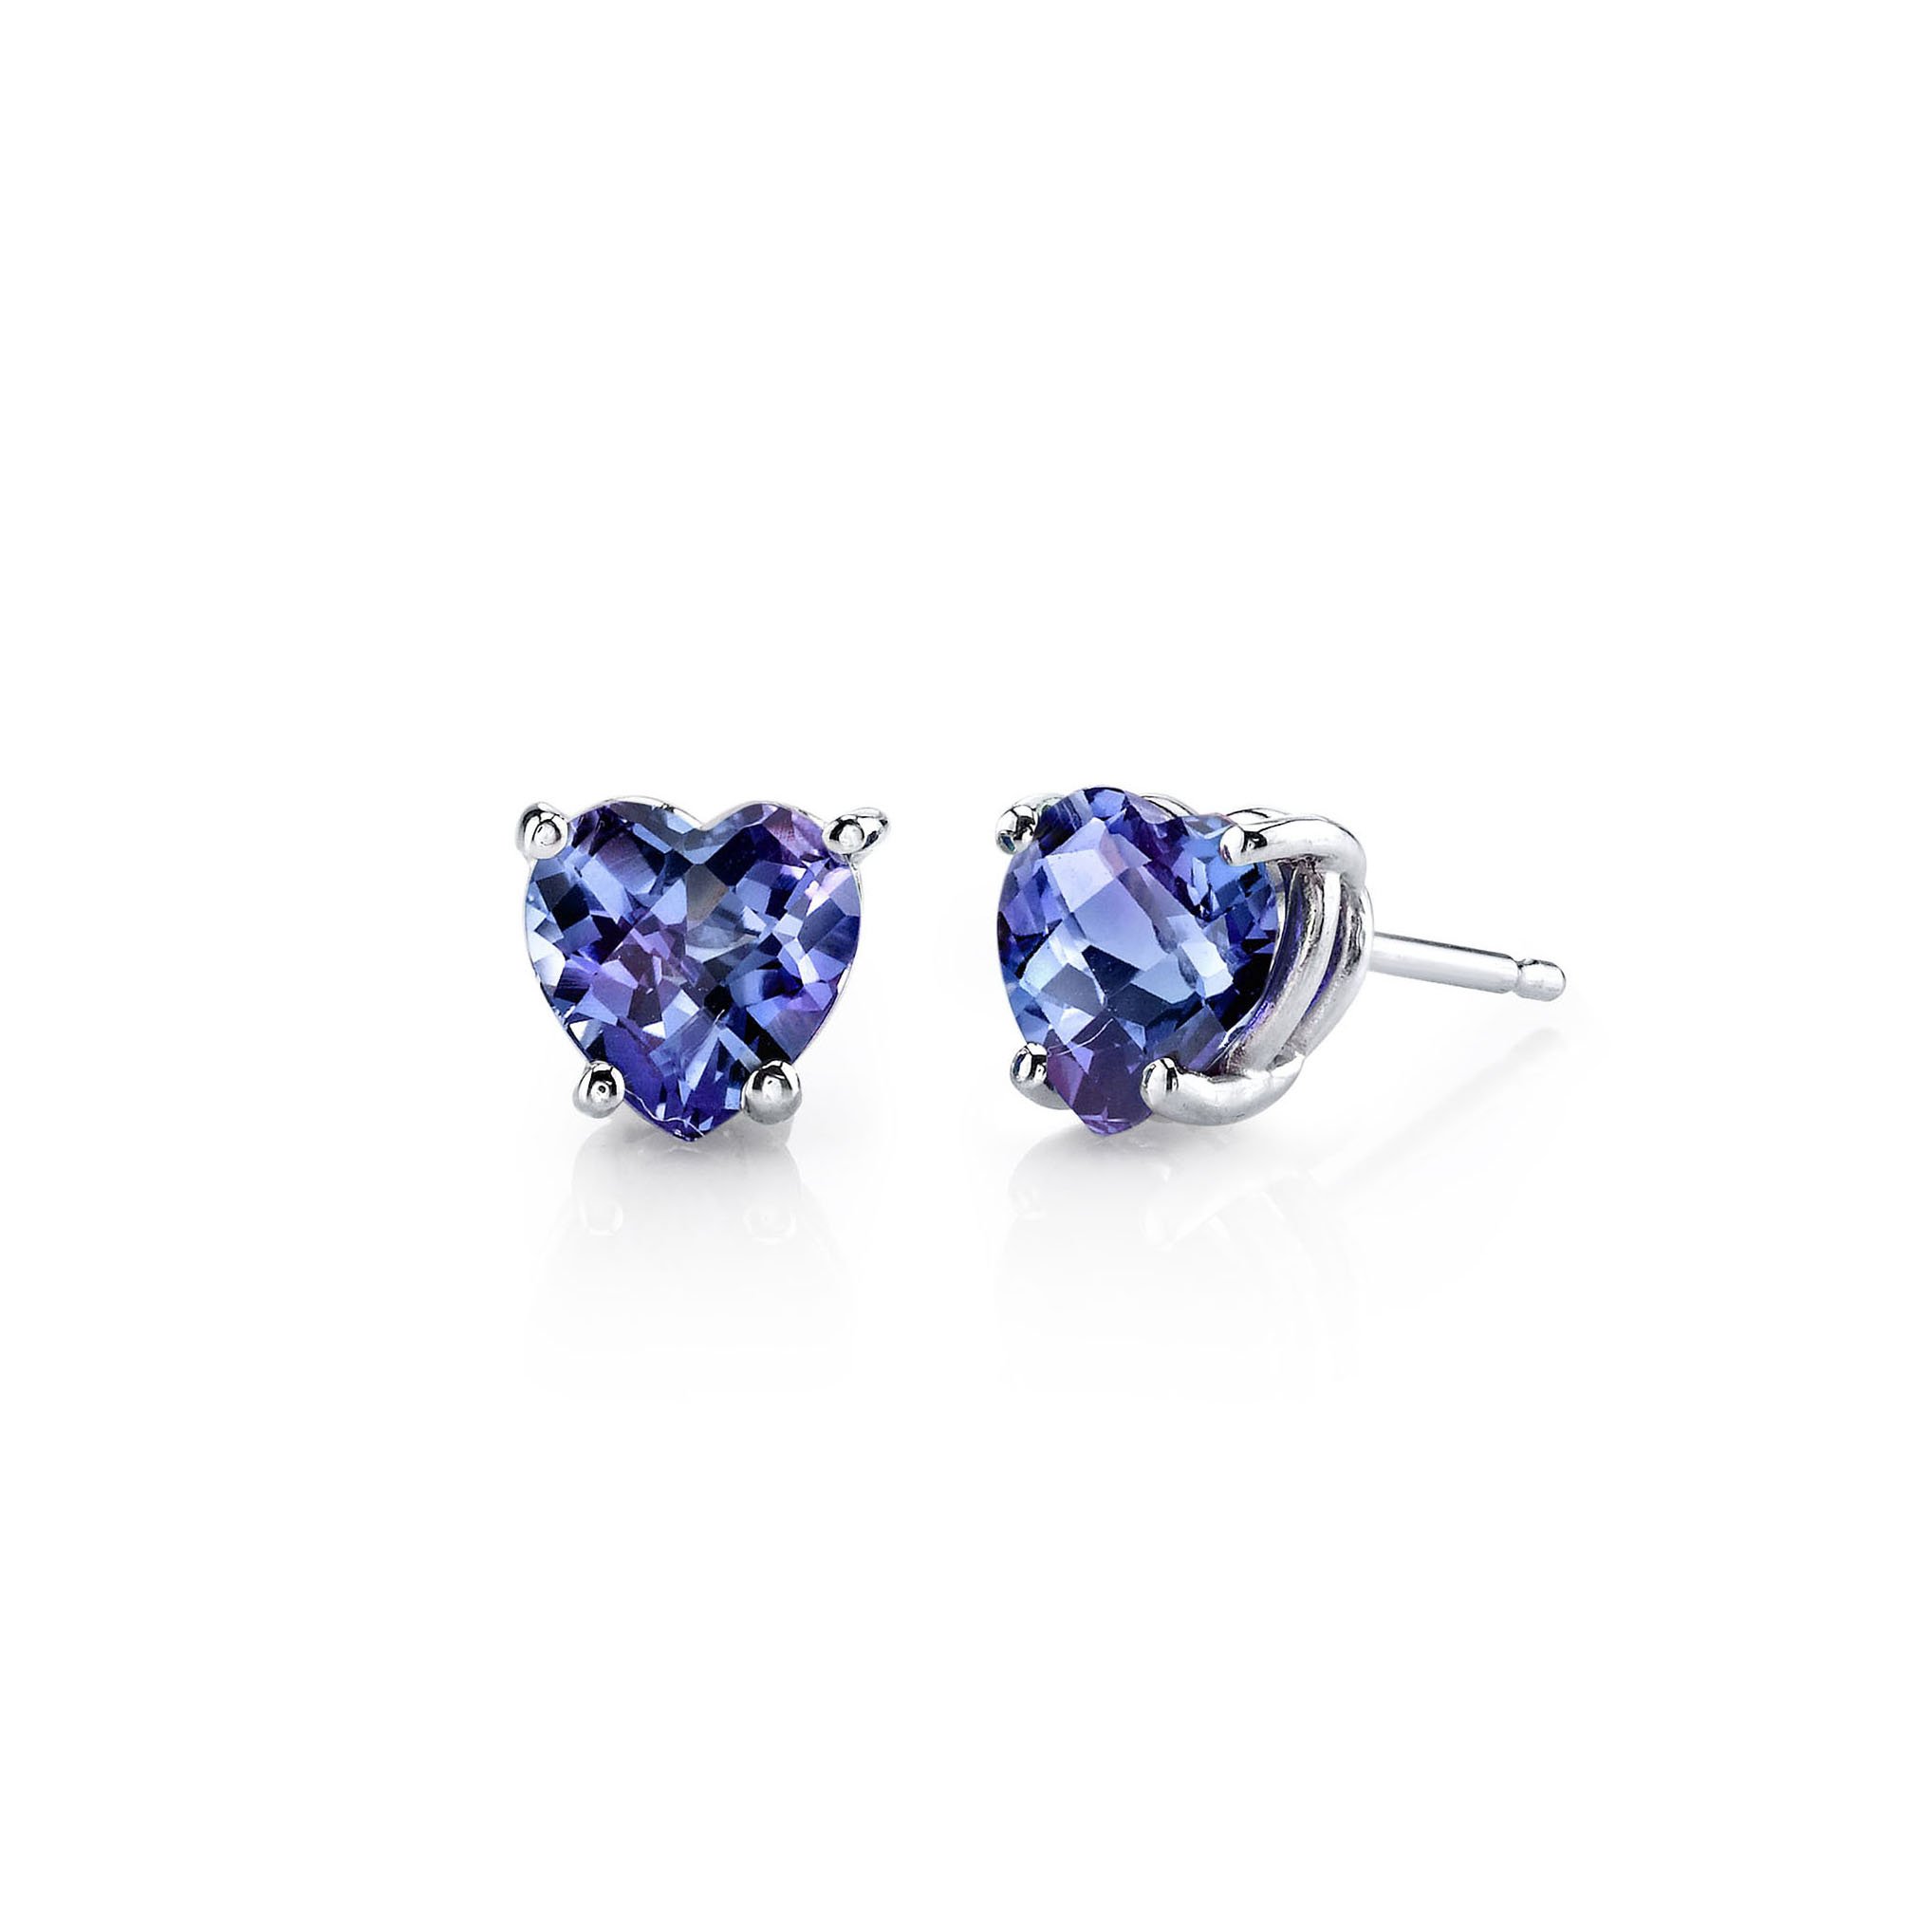 Heart Shaped Alexandrite Stud Earrings In 9ct White Gold